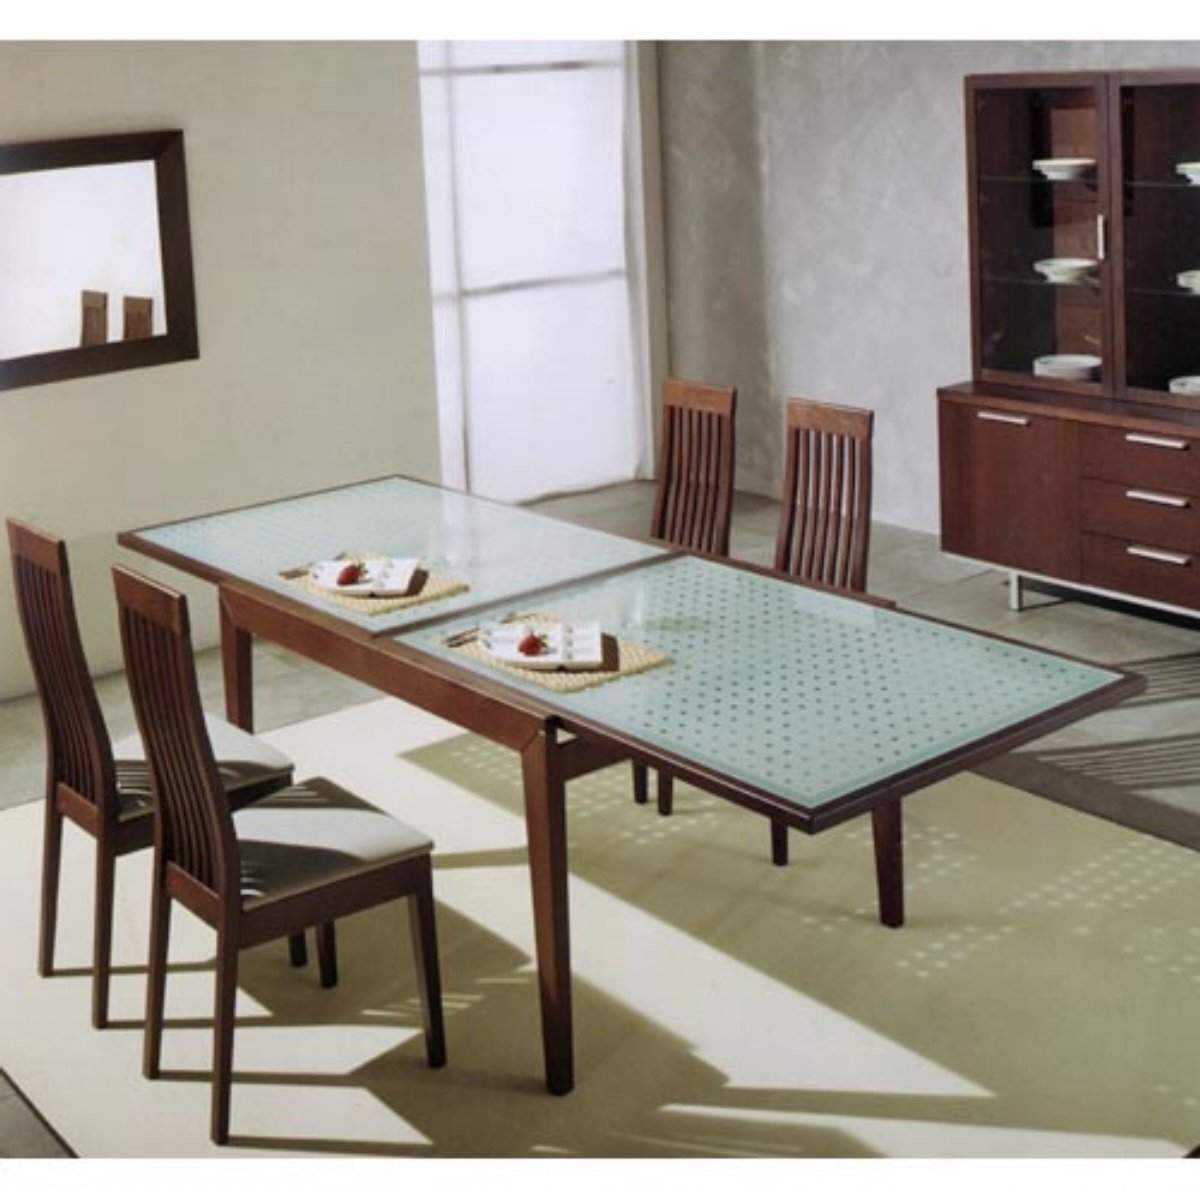 Extending Glass Dining Table Sets • Table Setting Design regarding Well-liked Extending Glass Dining Tables